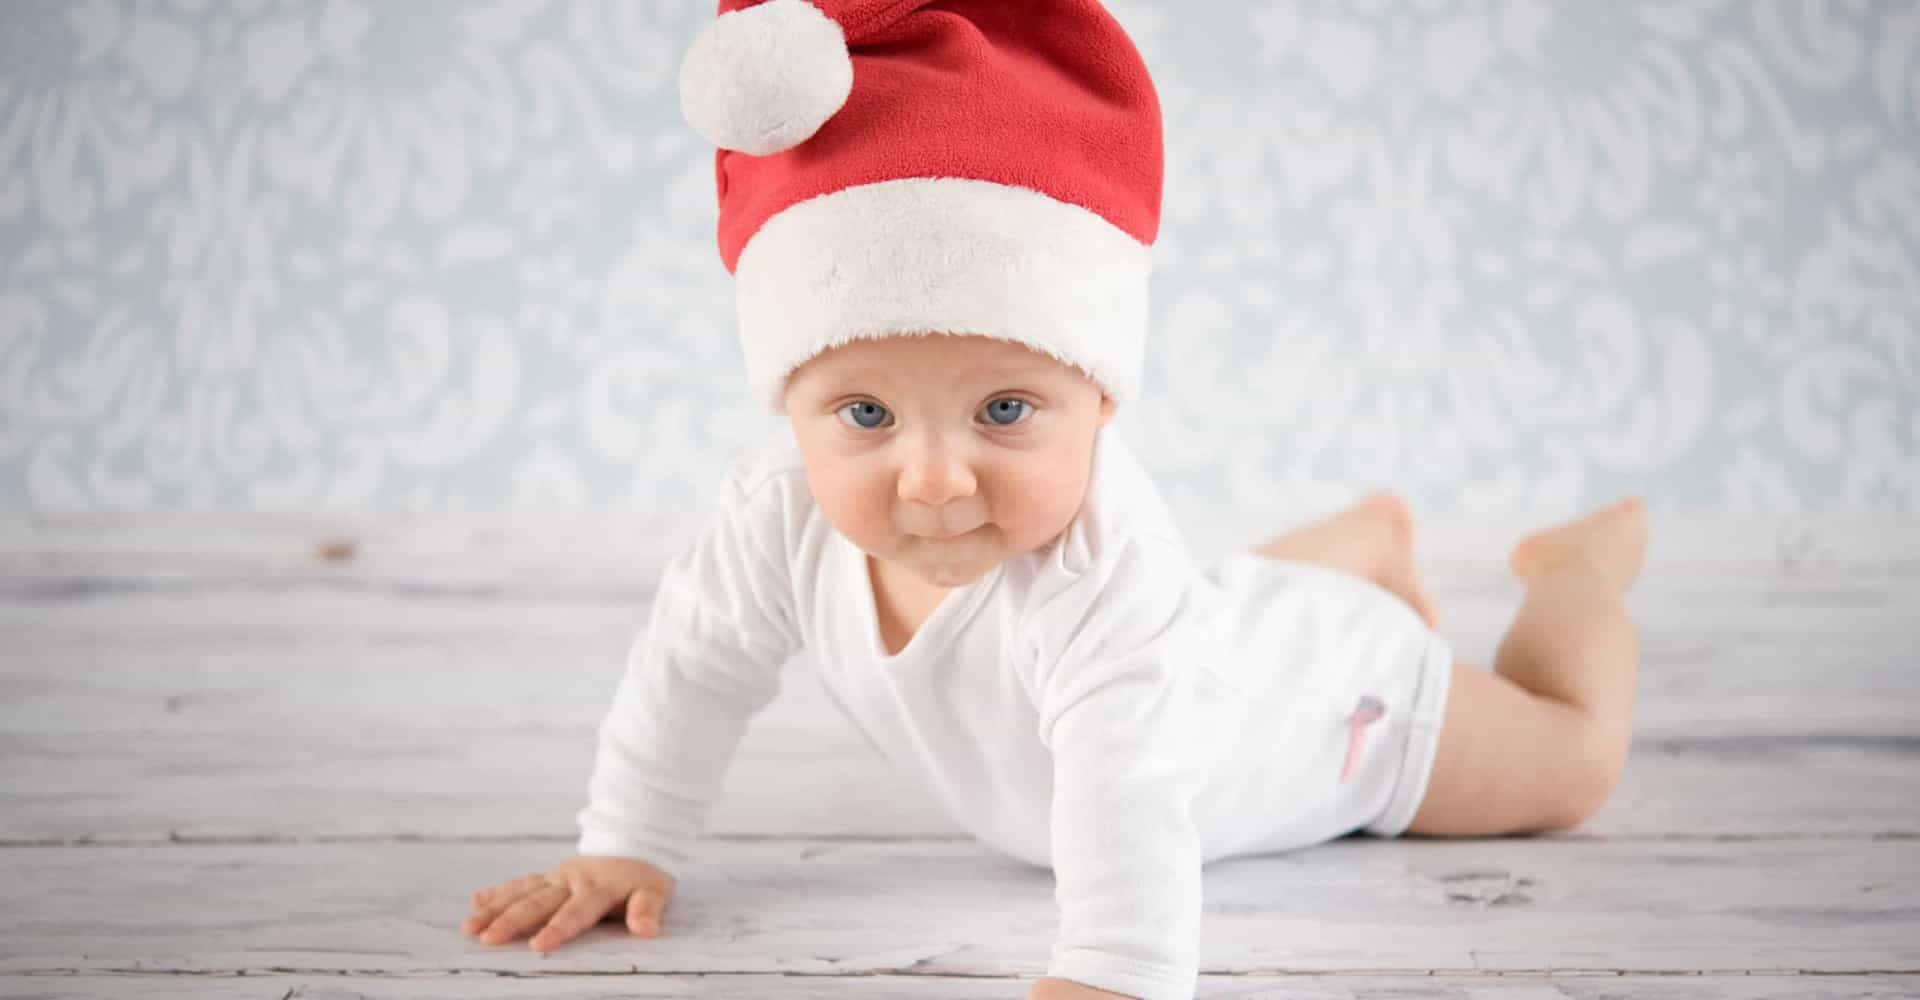 The cutest babies celebrating Christmas